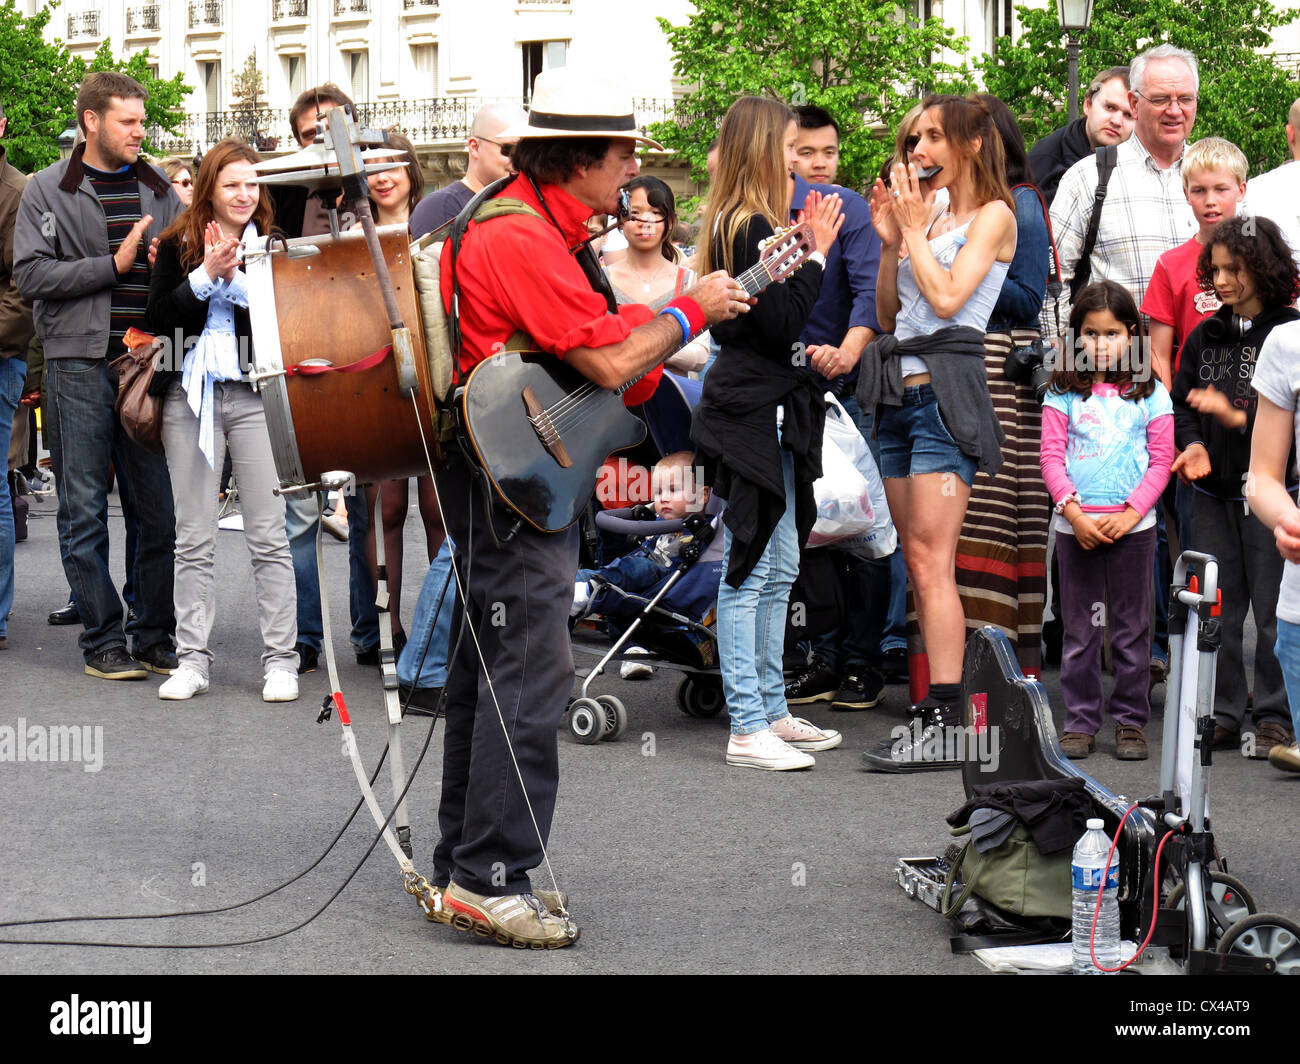 One-man band at Pont Saint-Louis, bridge, Seine river, Paris, France, Europe - Stock Image